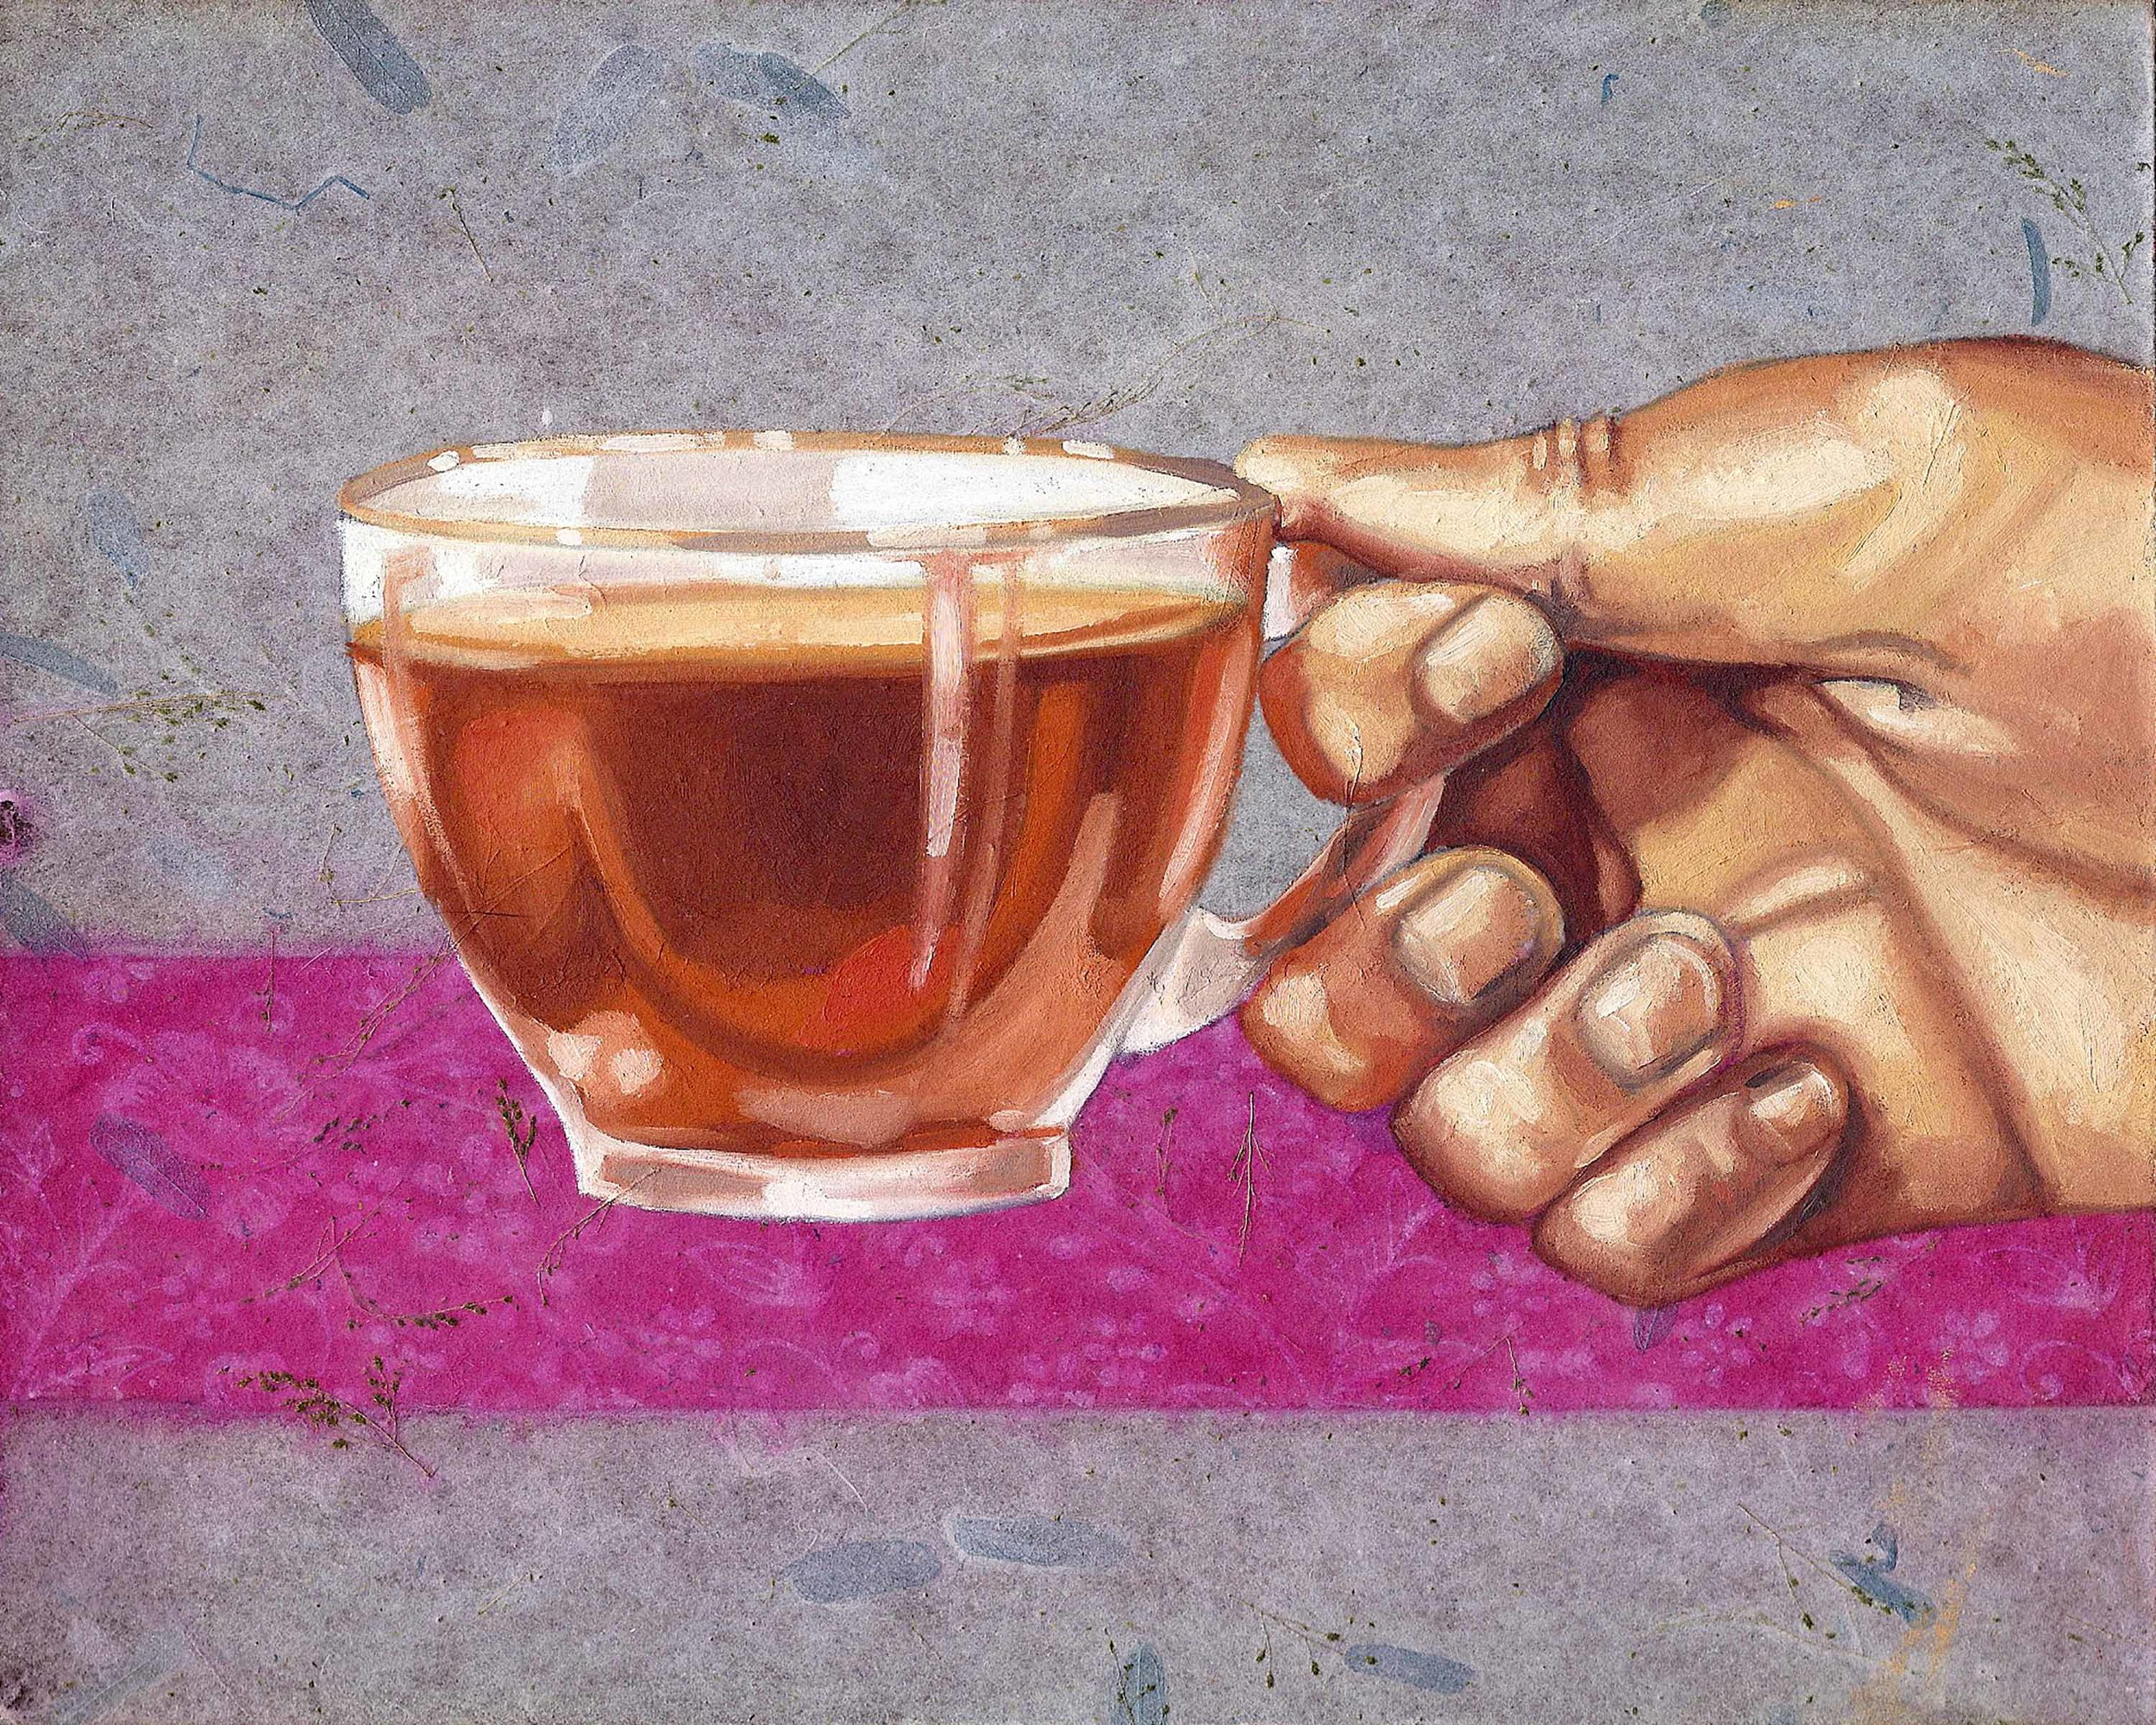 """Tea Cup, 8 x 10"""", oil and rice paper on panel, 2014"""